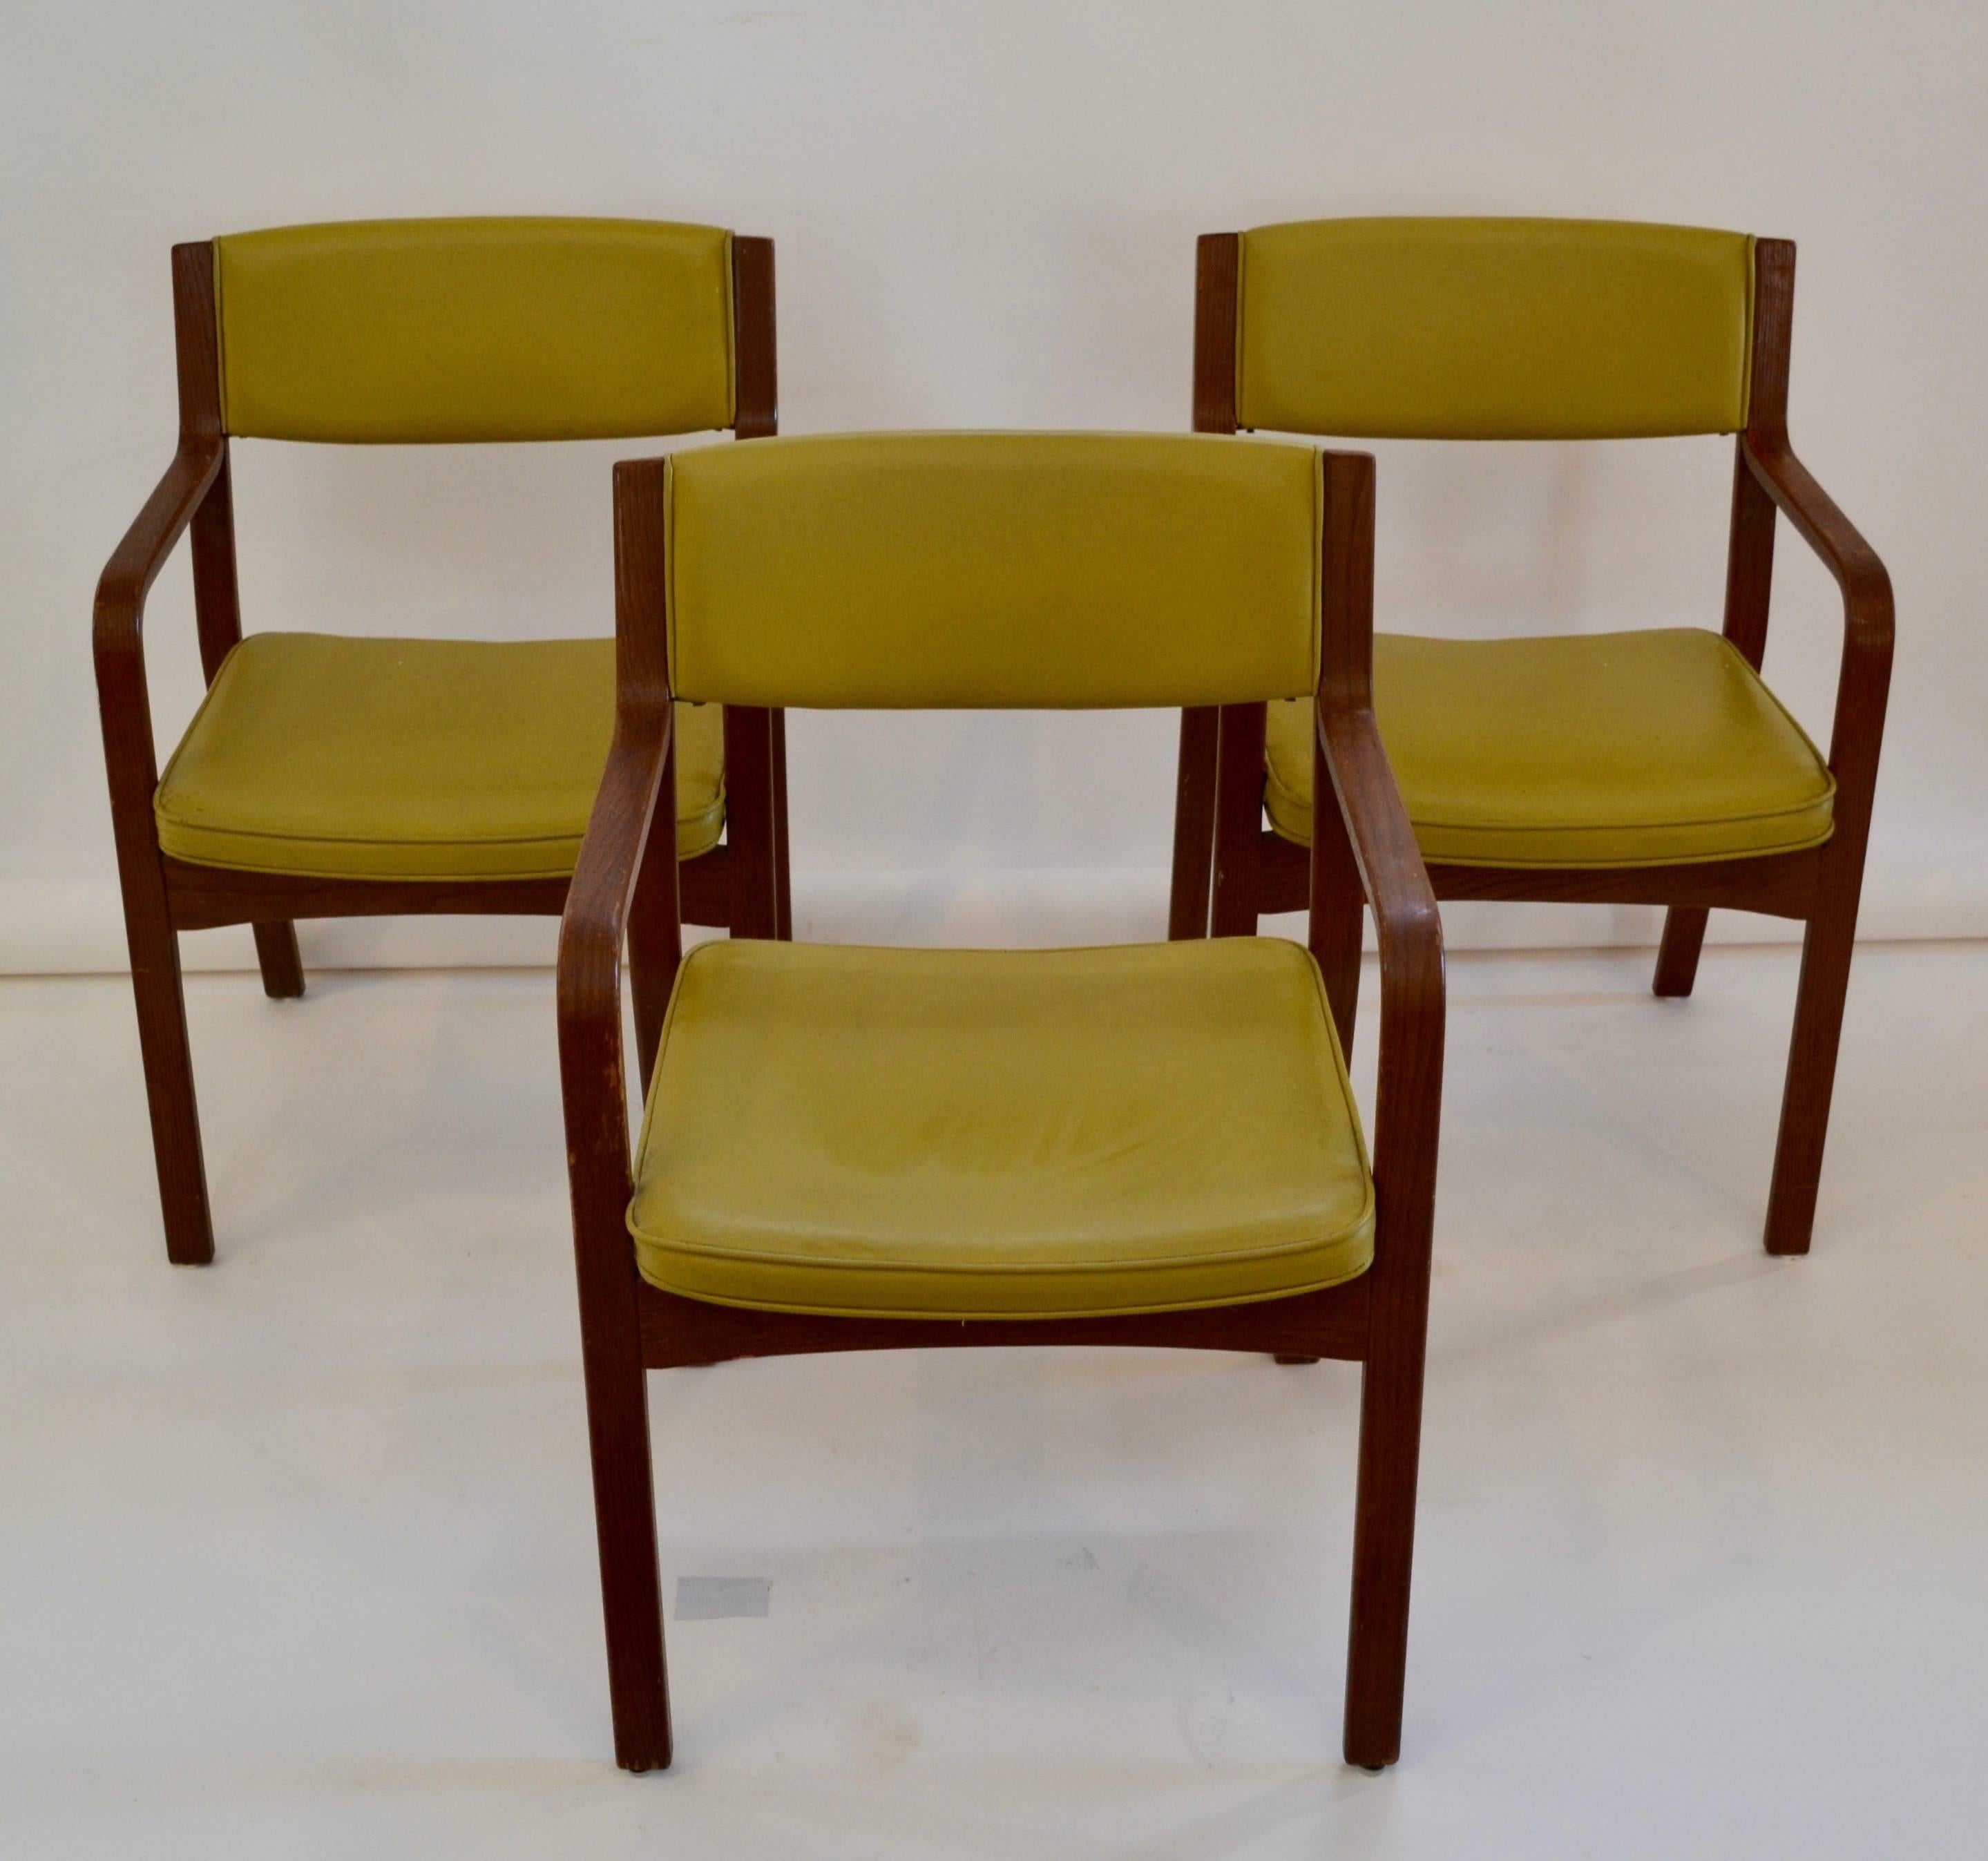 Set Of Four Vinyl And Bentwood Thonet Armchairs With Original Finish And  Green Upholstery. These